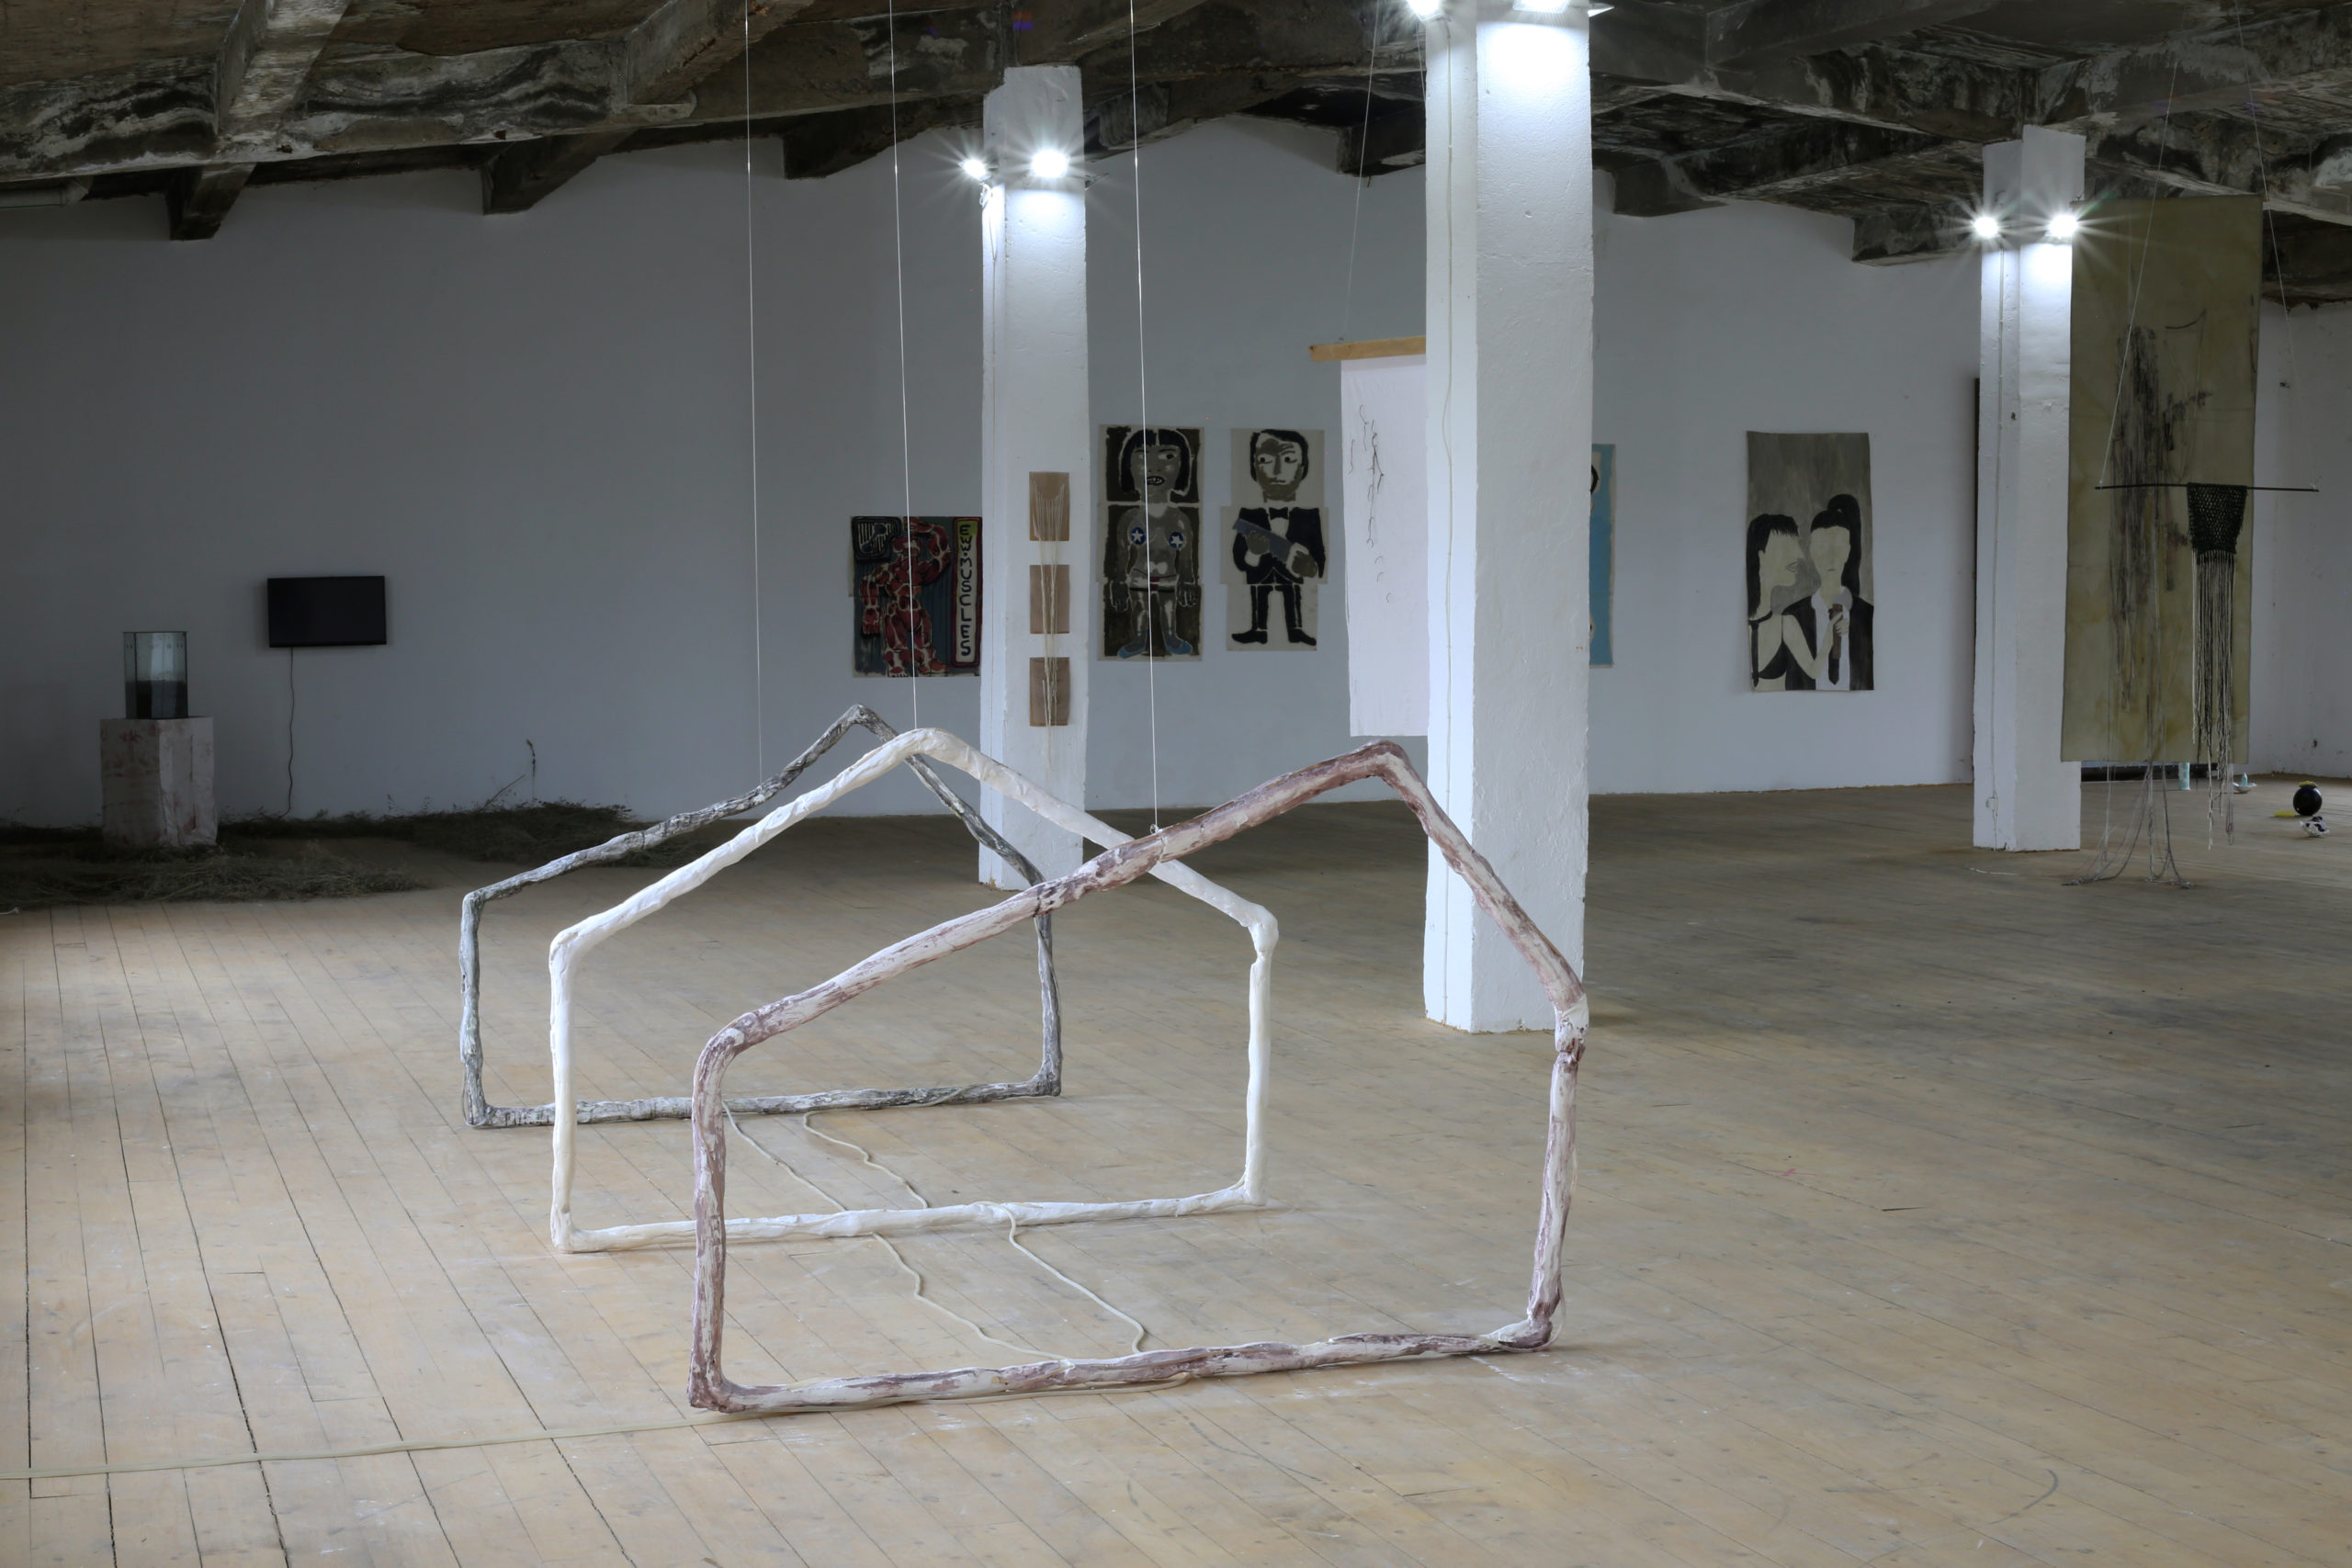 Art gallery displaying paintings and modern sculpture